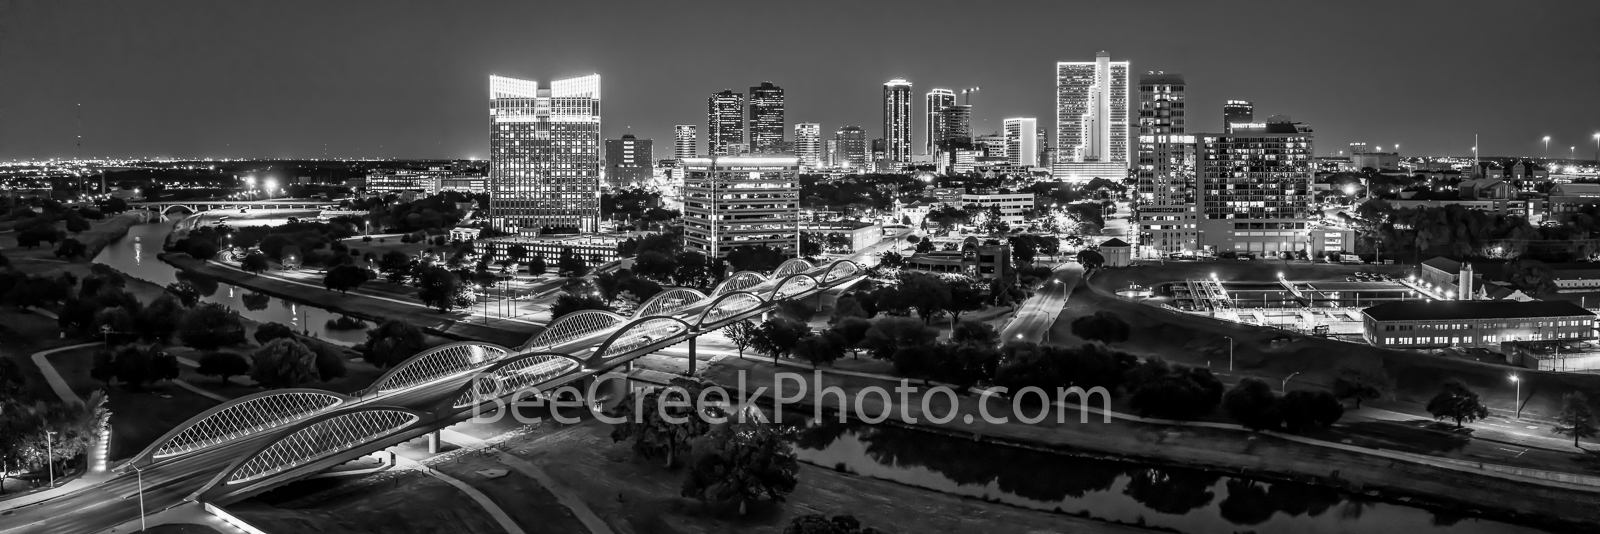 Fort Worth skyline, Ft Worth, skyline, skylines, black and white, b w, cityscape, cityscapes, downtown, night, seventh street bridge, 7th street, Trinity river, panorama, pano, Tarrant county, DFW Met, photo